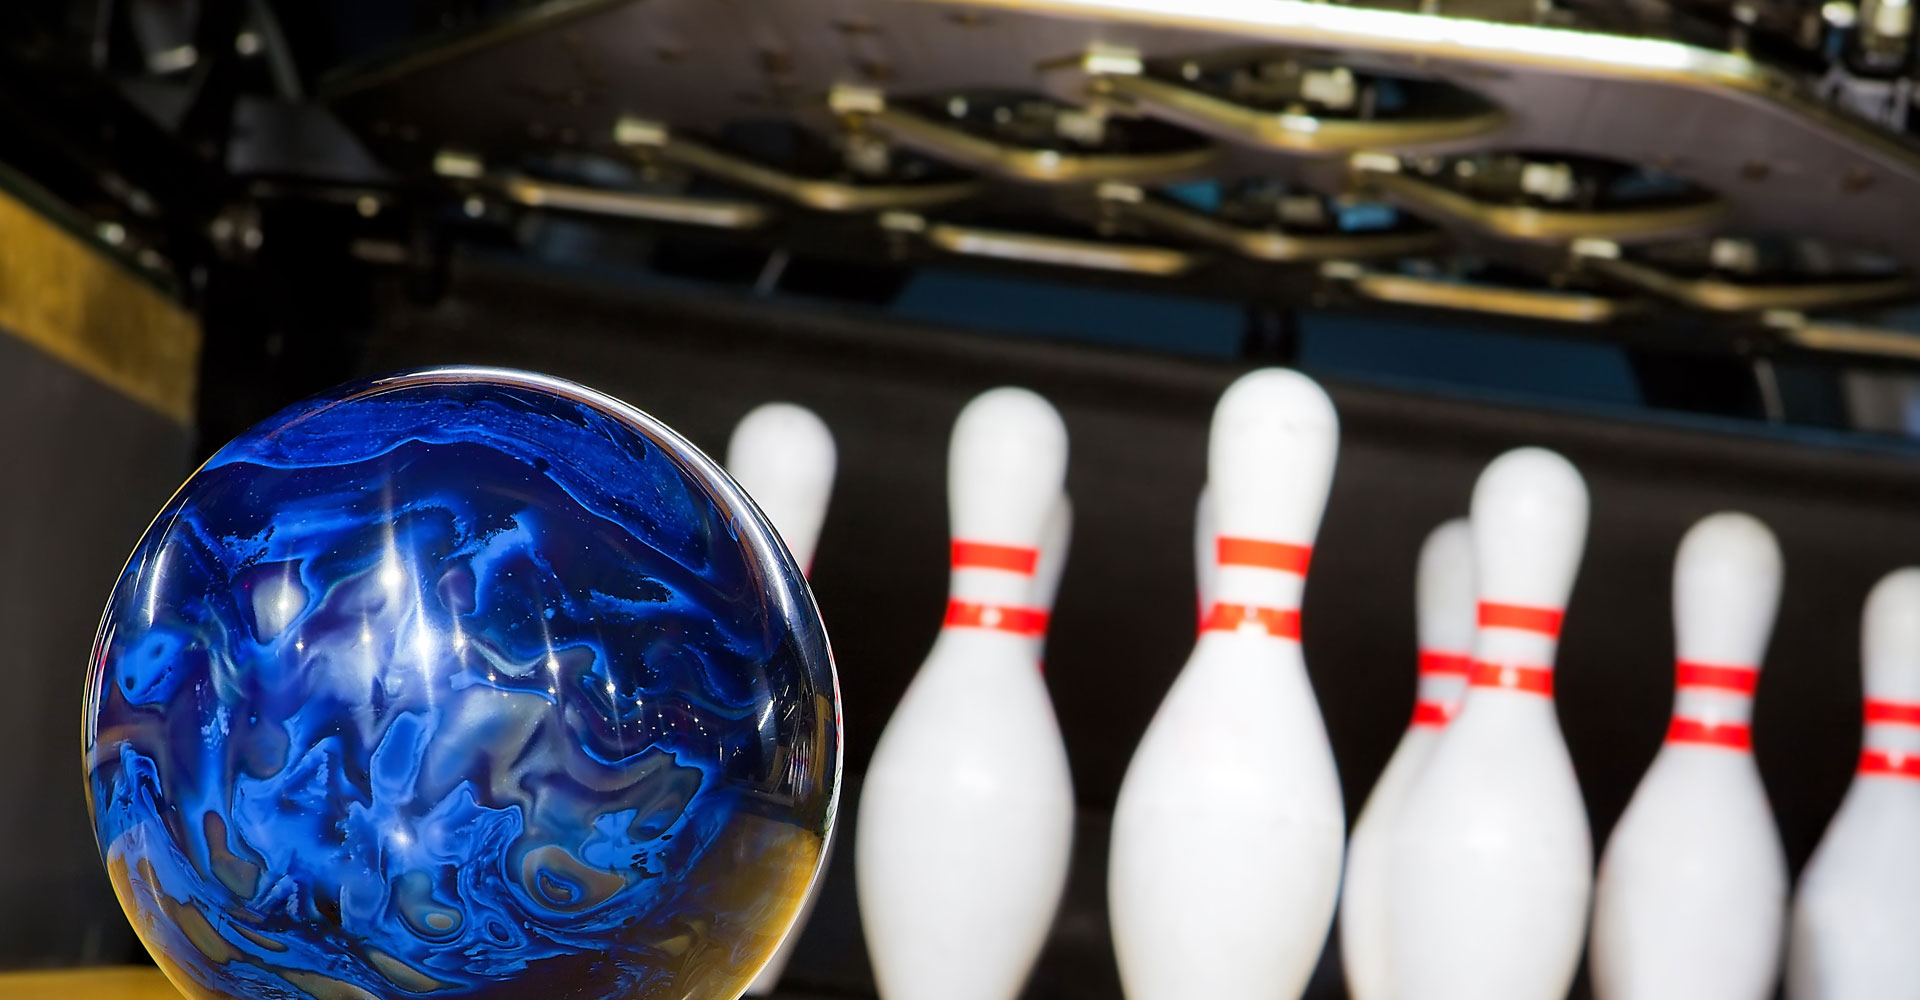 st-louis-bowling-alley-header - Olivette Lanes Bowling Alley